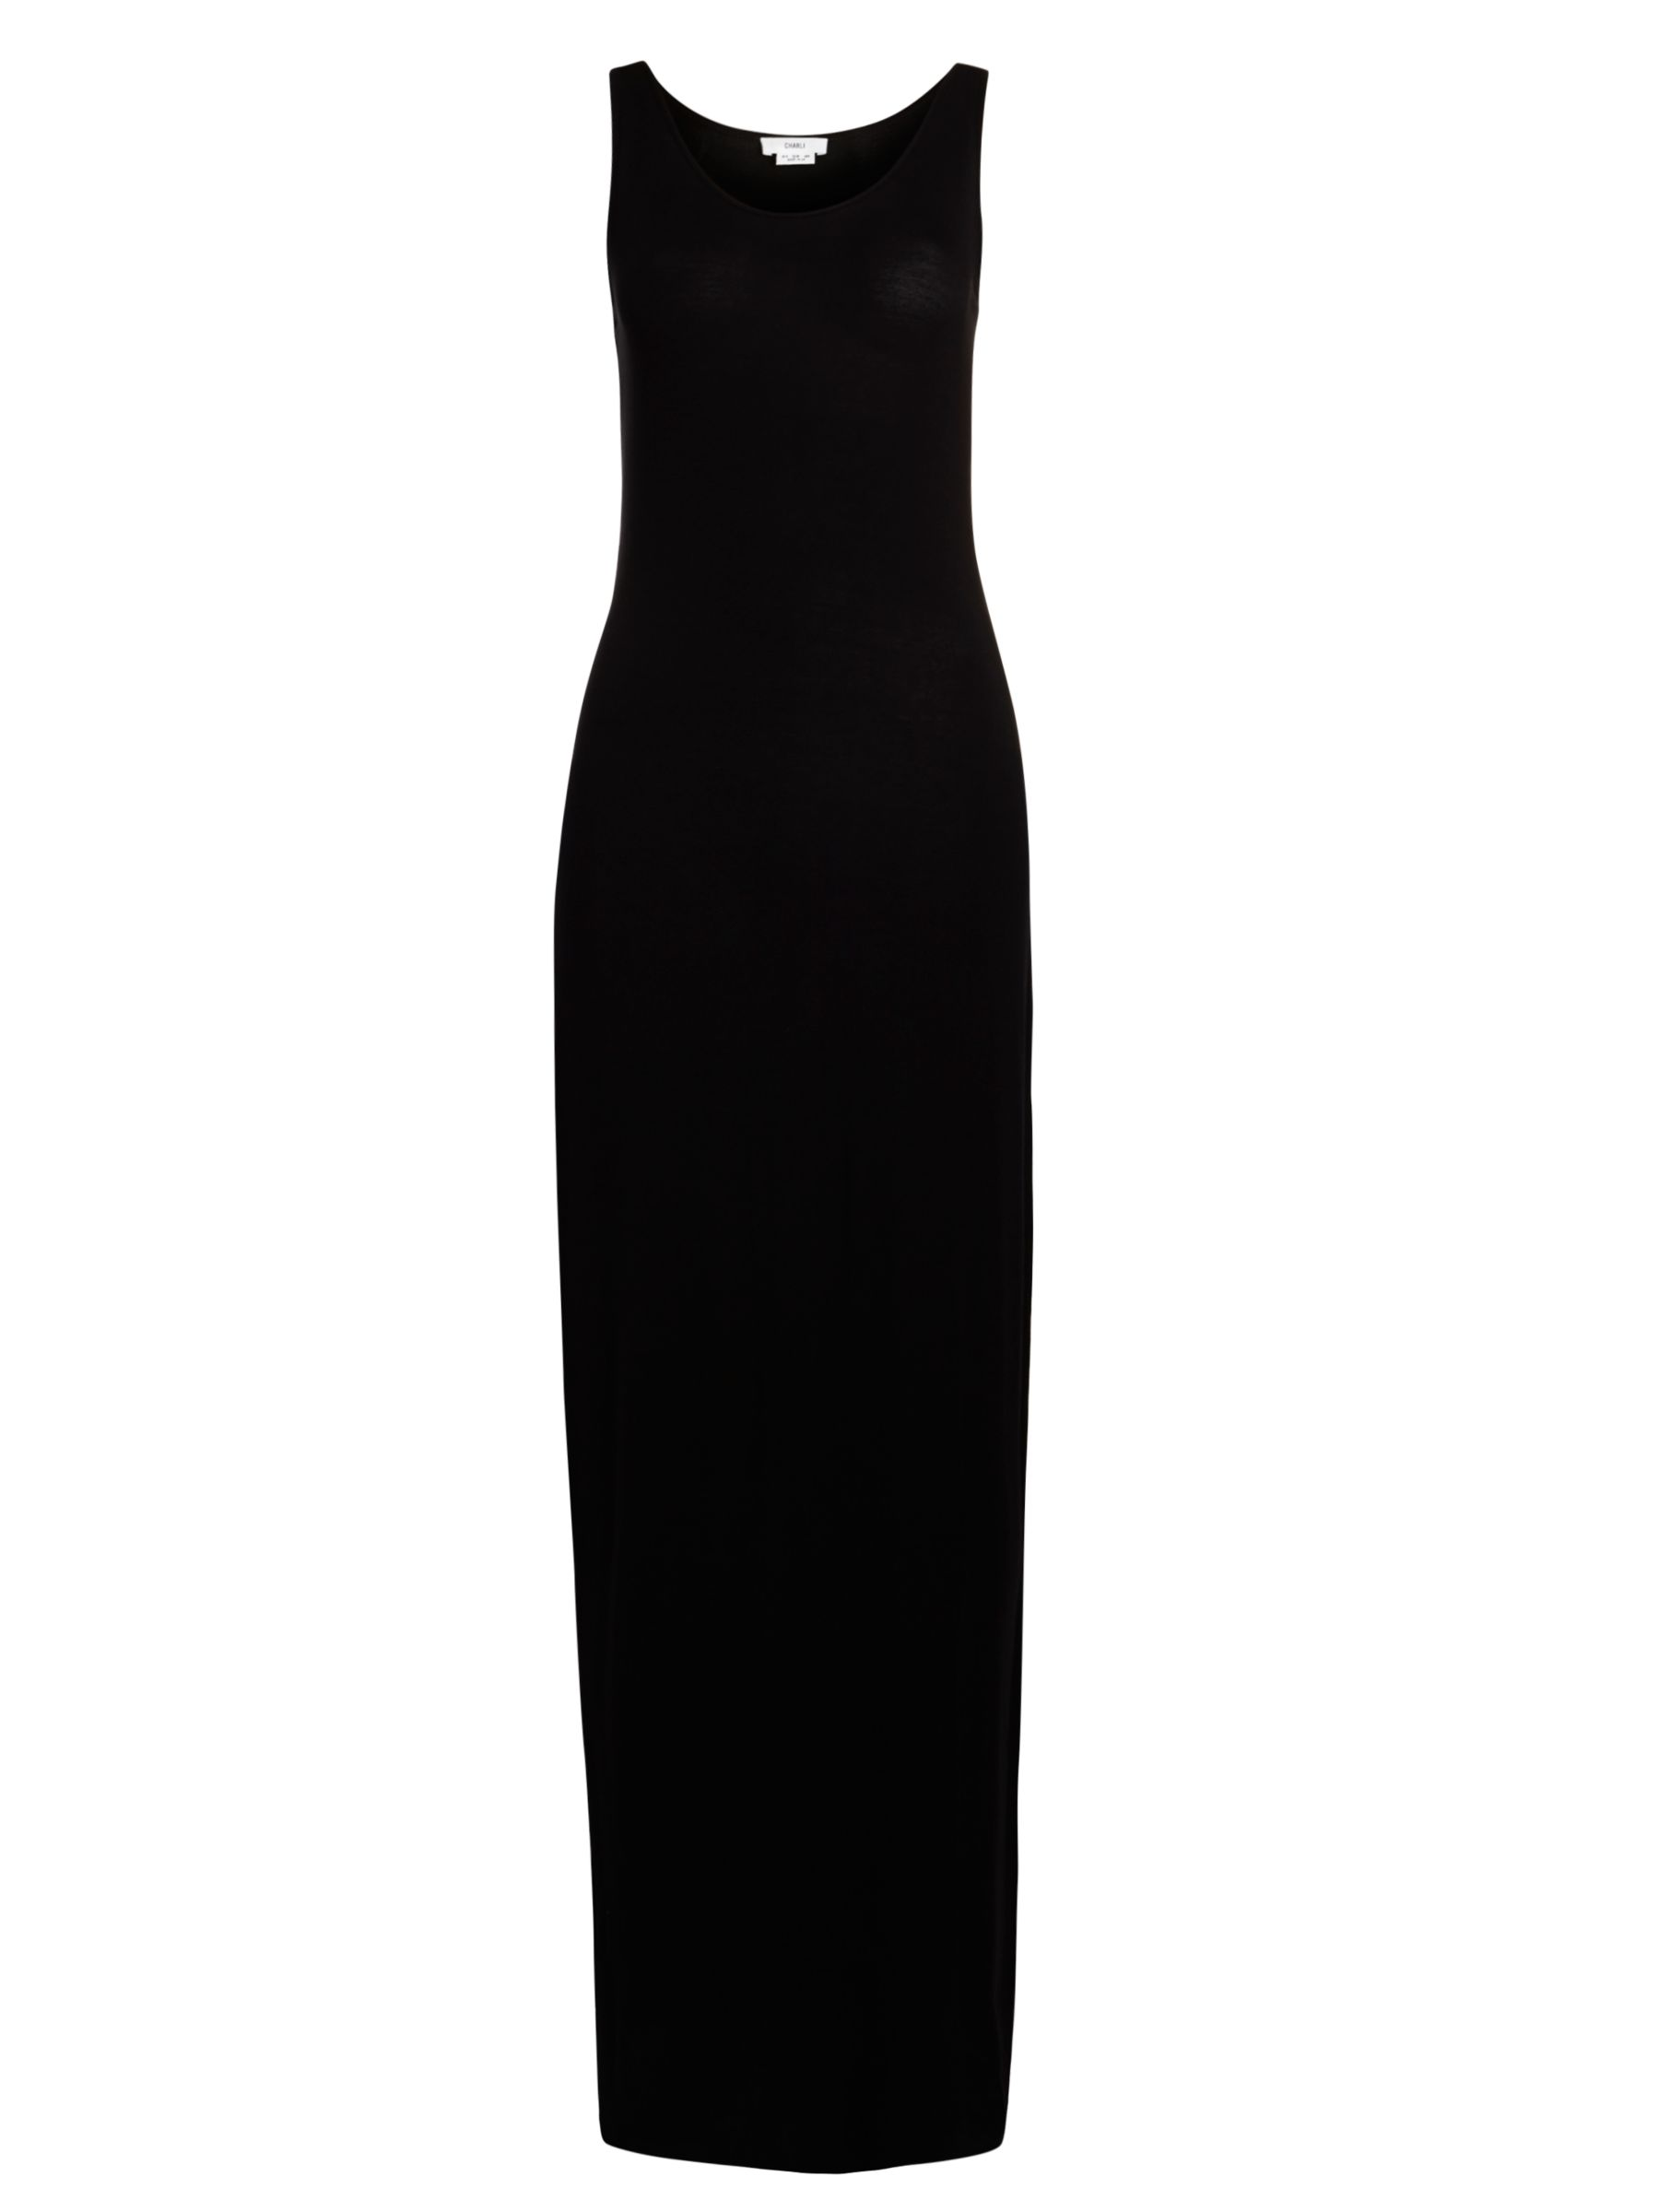 charli long vest dress black, charli, long, vest, dress, black, 12|10|14, women, womens dresses, 1925661